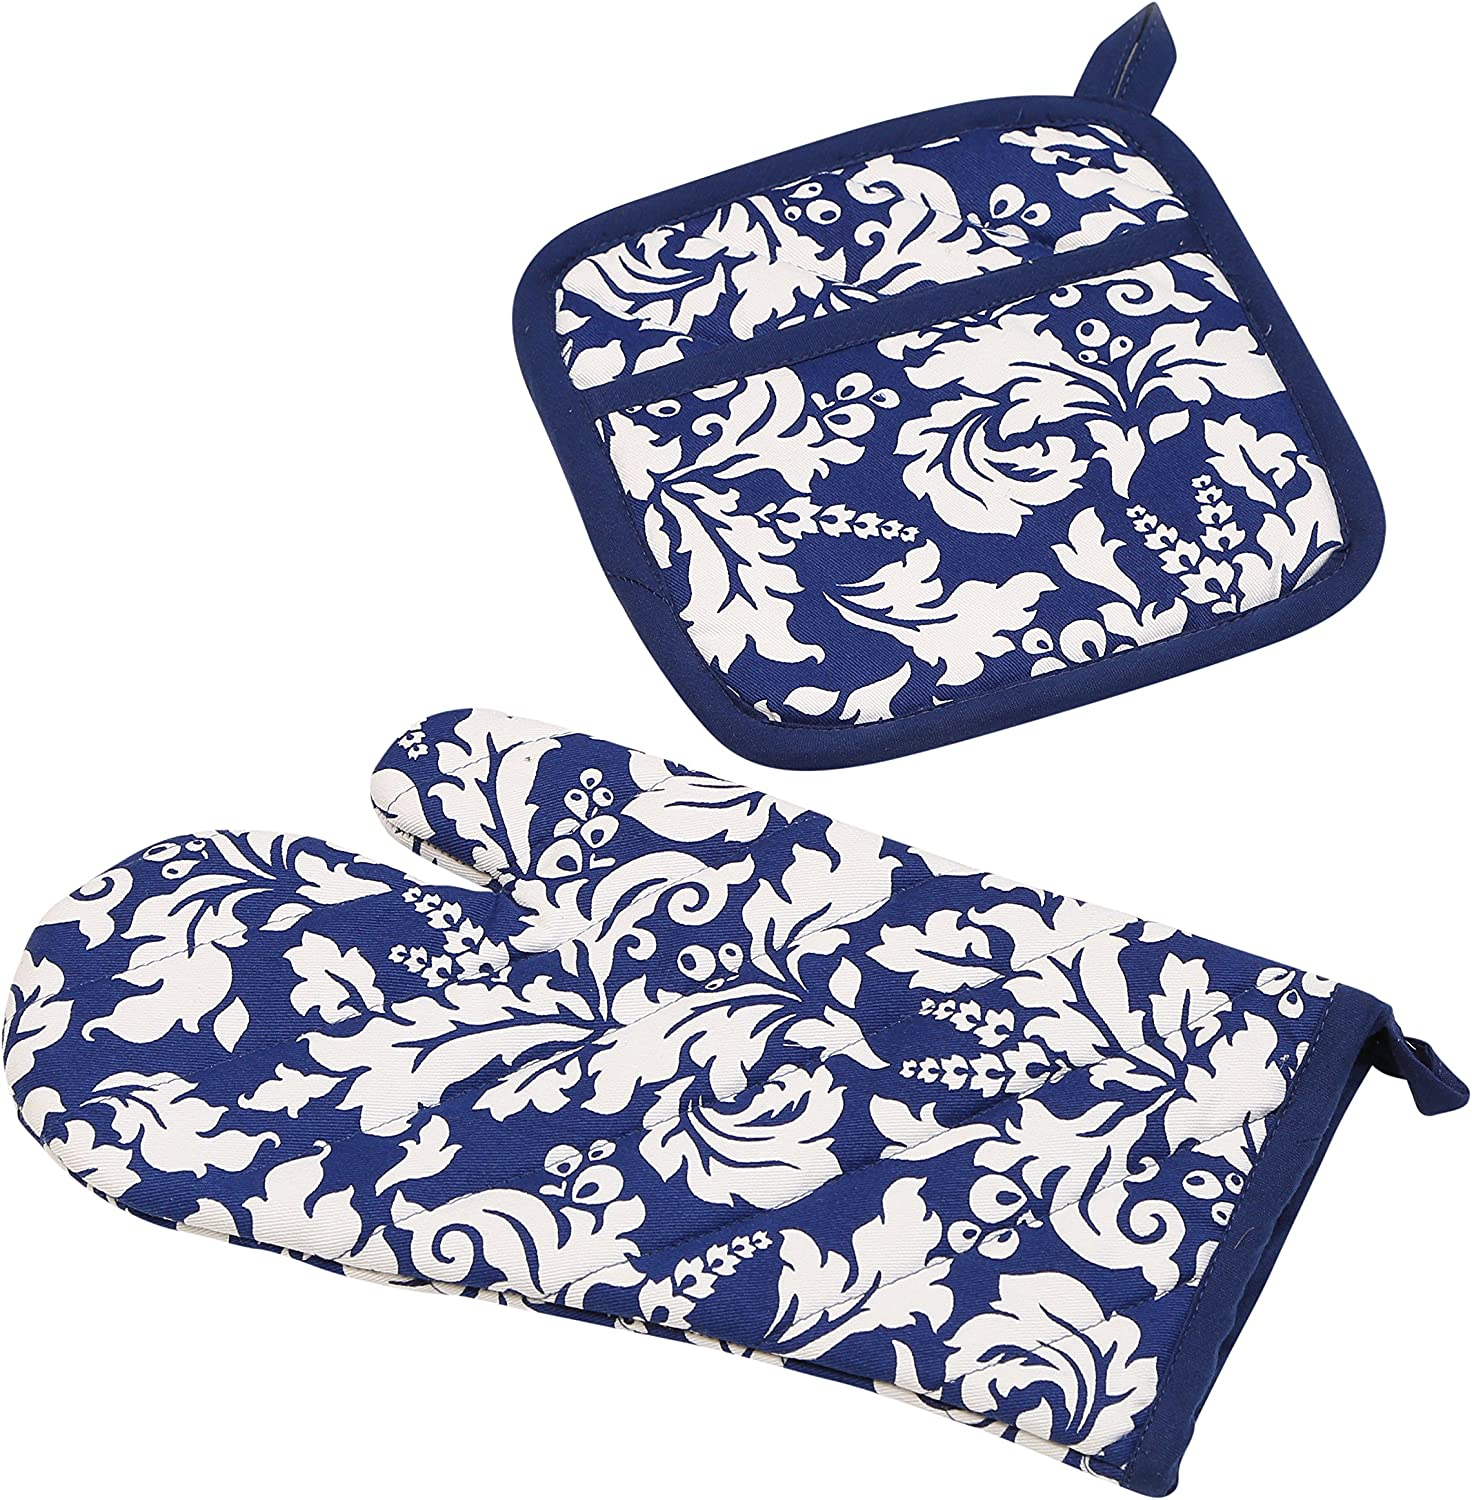 Yourtablecloth Set of Oven Mitt and Pot Holder or Oven Gloves-100% Cotton, High Heat Resistance, Superior Protection & Comfort–Elegant Design-Machine Washable-Nautical Blue